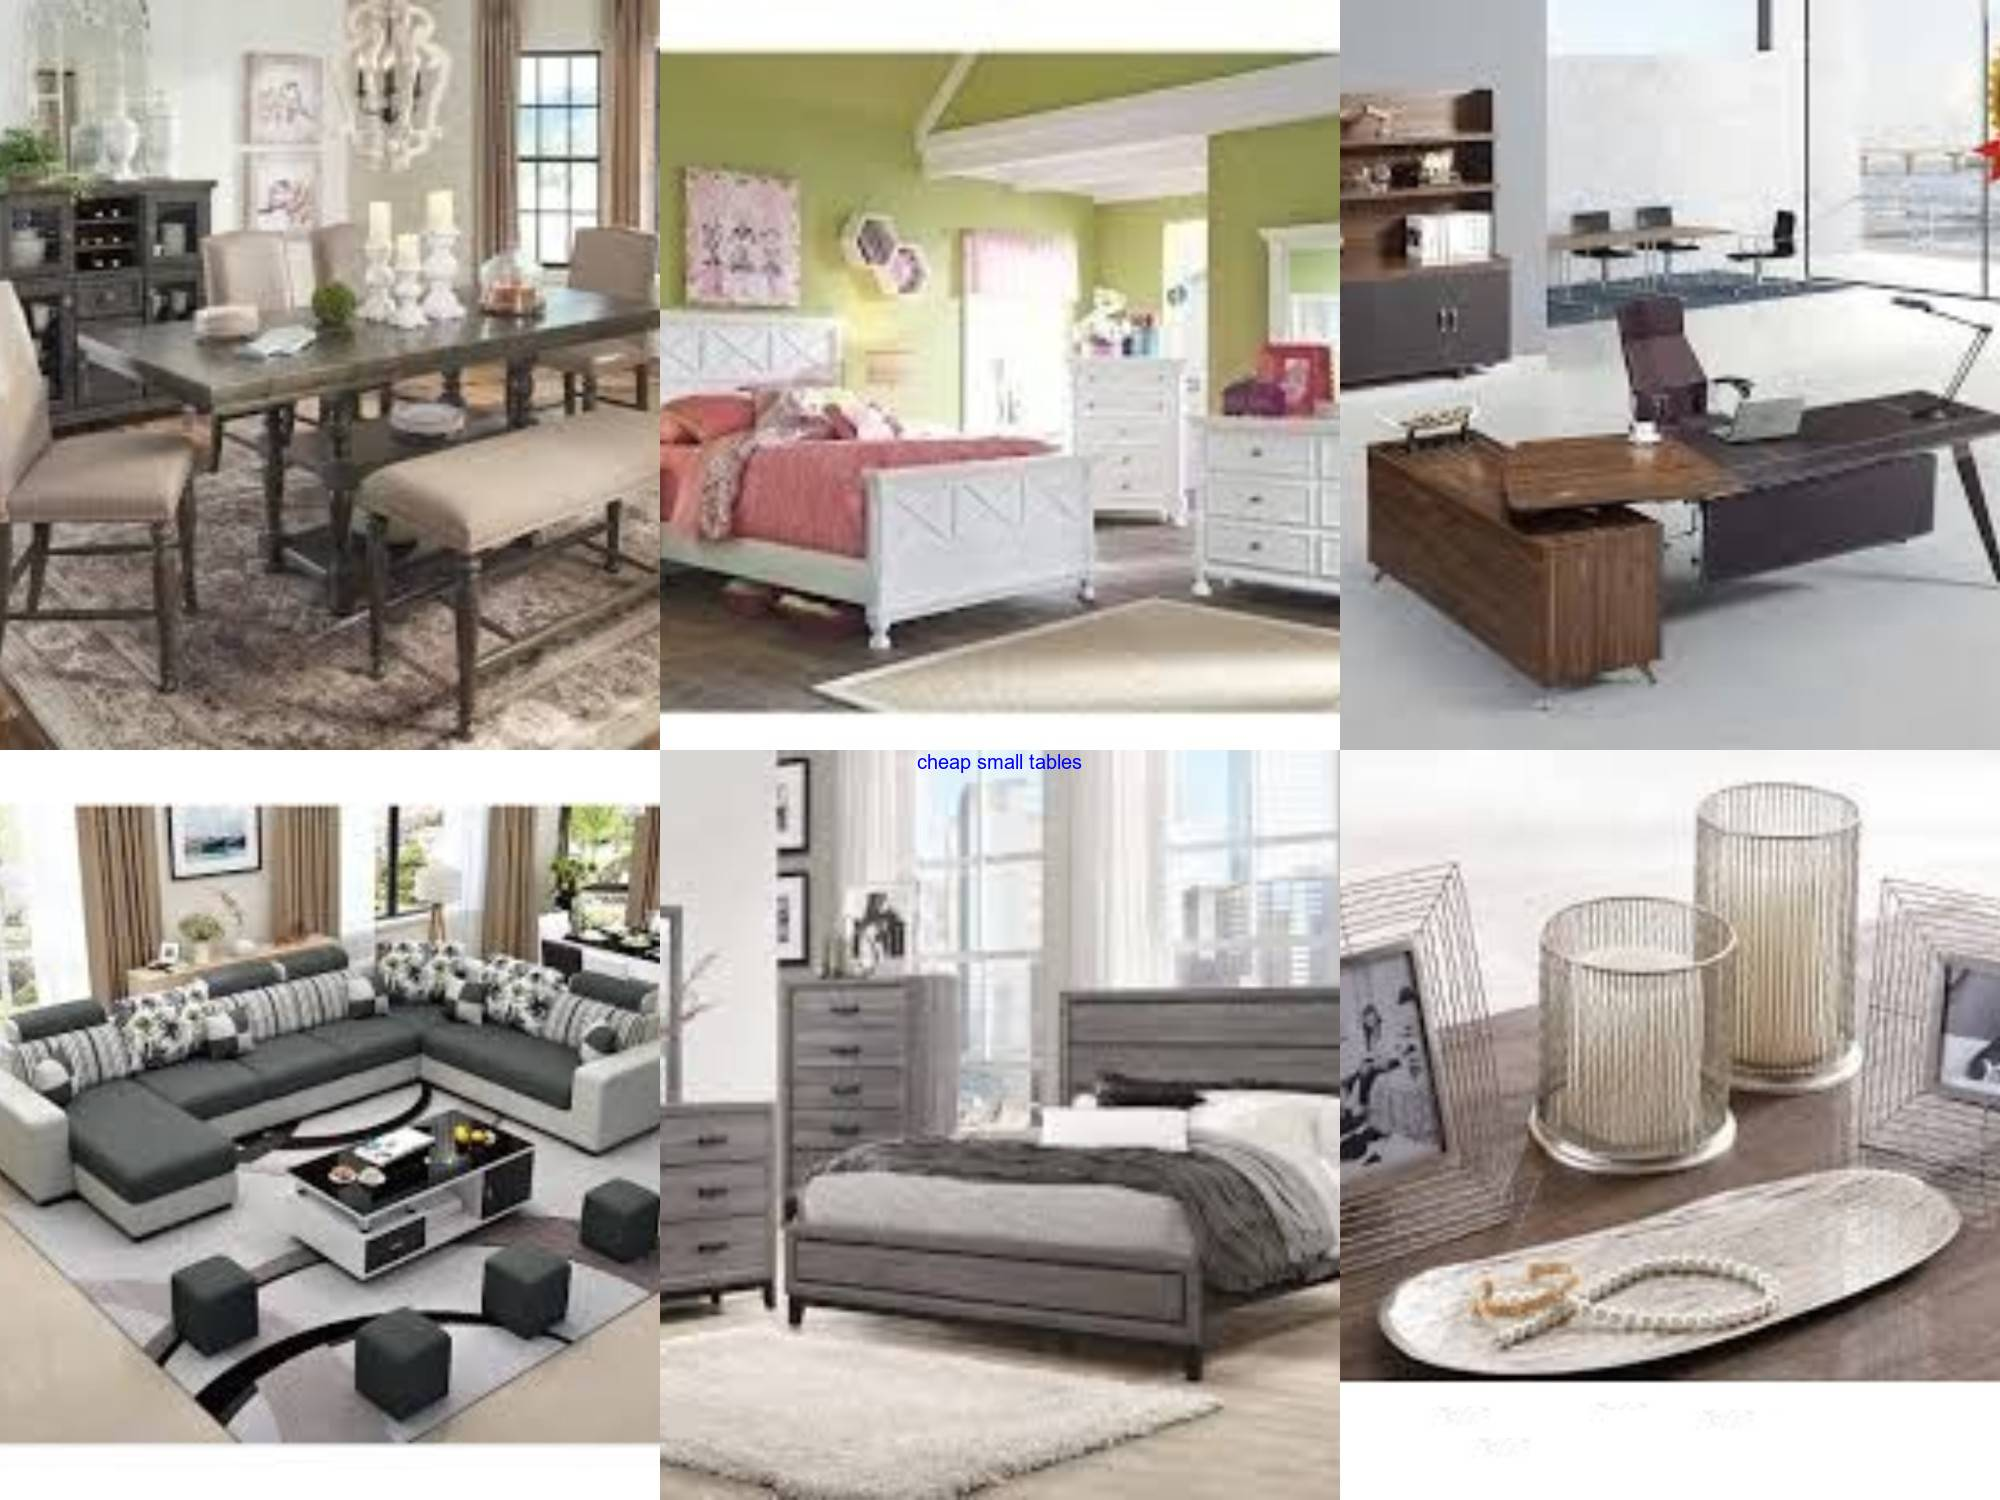 Home Decor El Paso Beautiful Cheap Small Tables I Would Re Mend that You Visit This